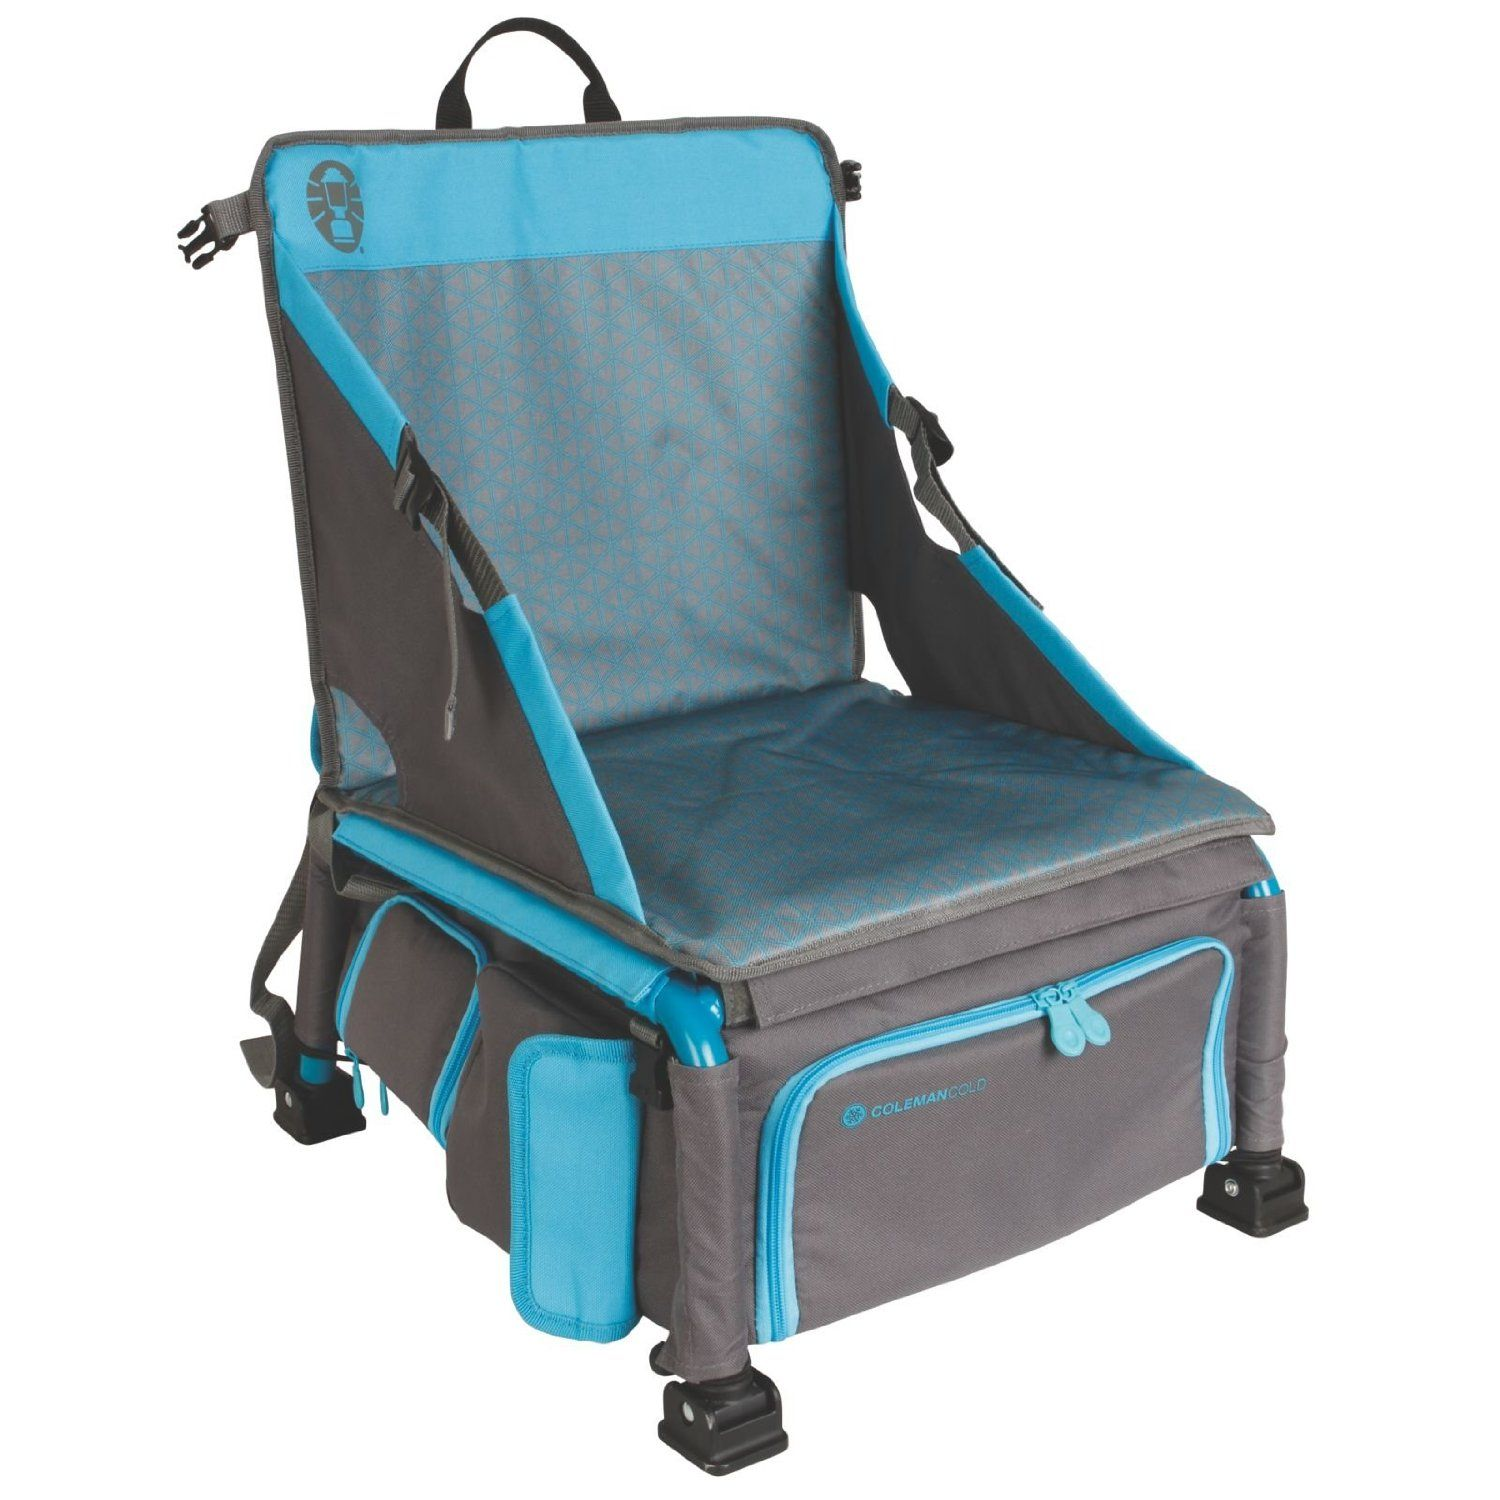 Chair Cooler Best Cooler Pack Backpack Chairs For Indoor And Outdoor Review